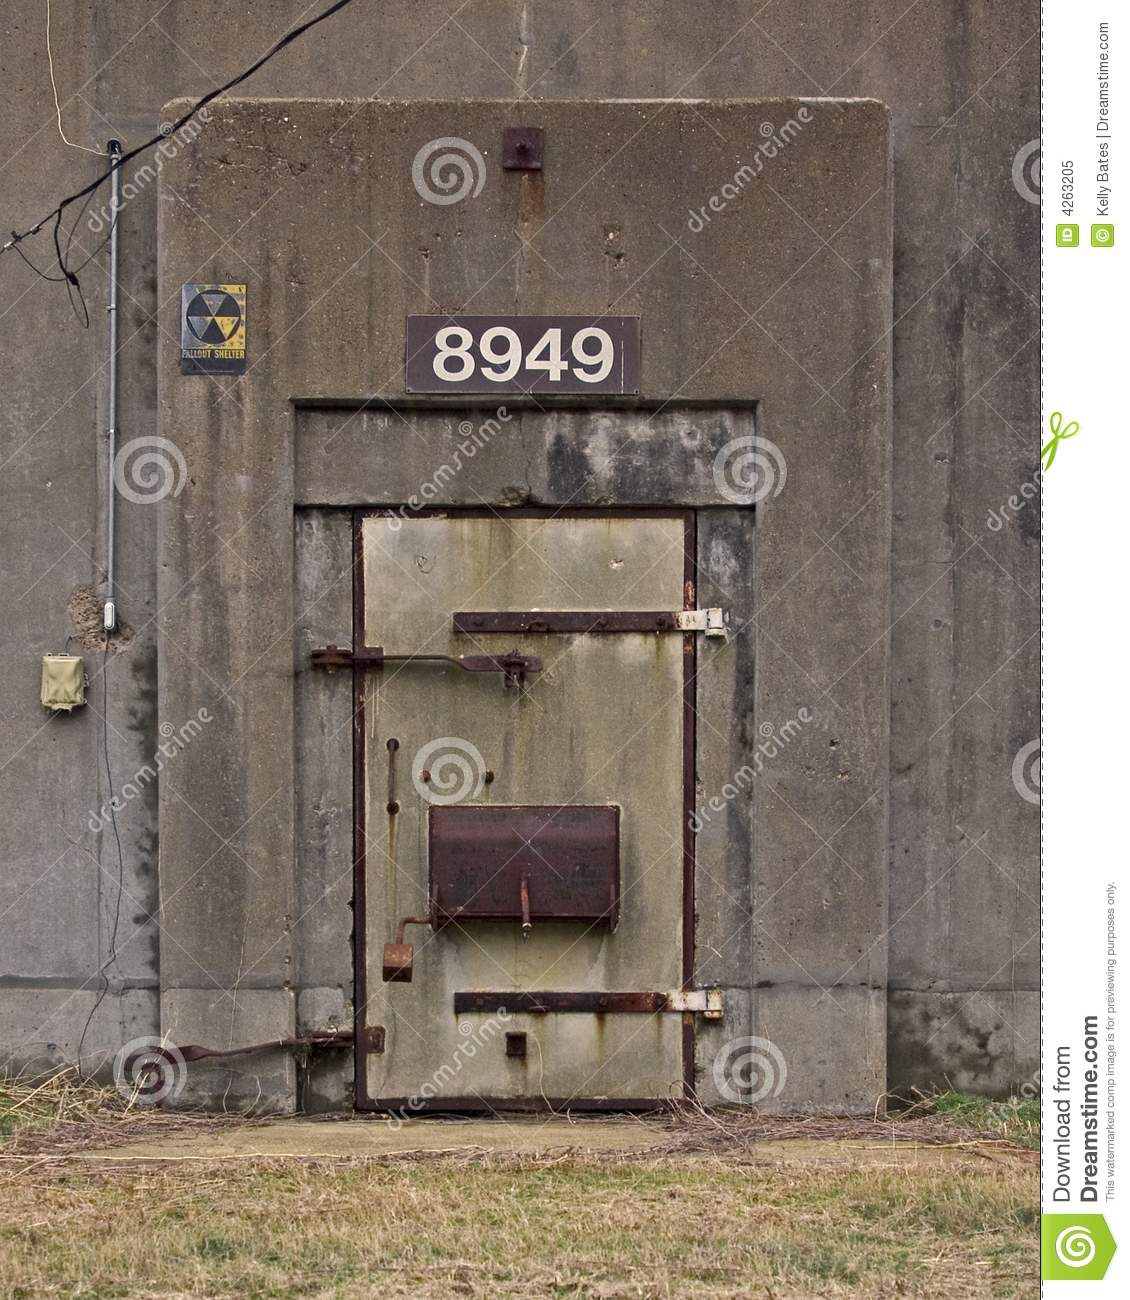 Weapons Bunker Stock Image Image Of Abstract Protect